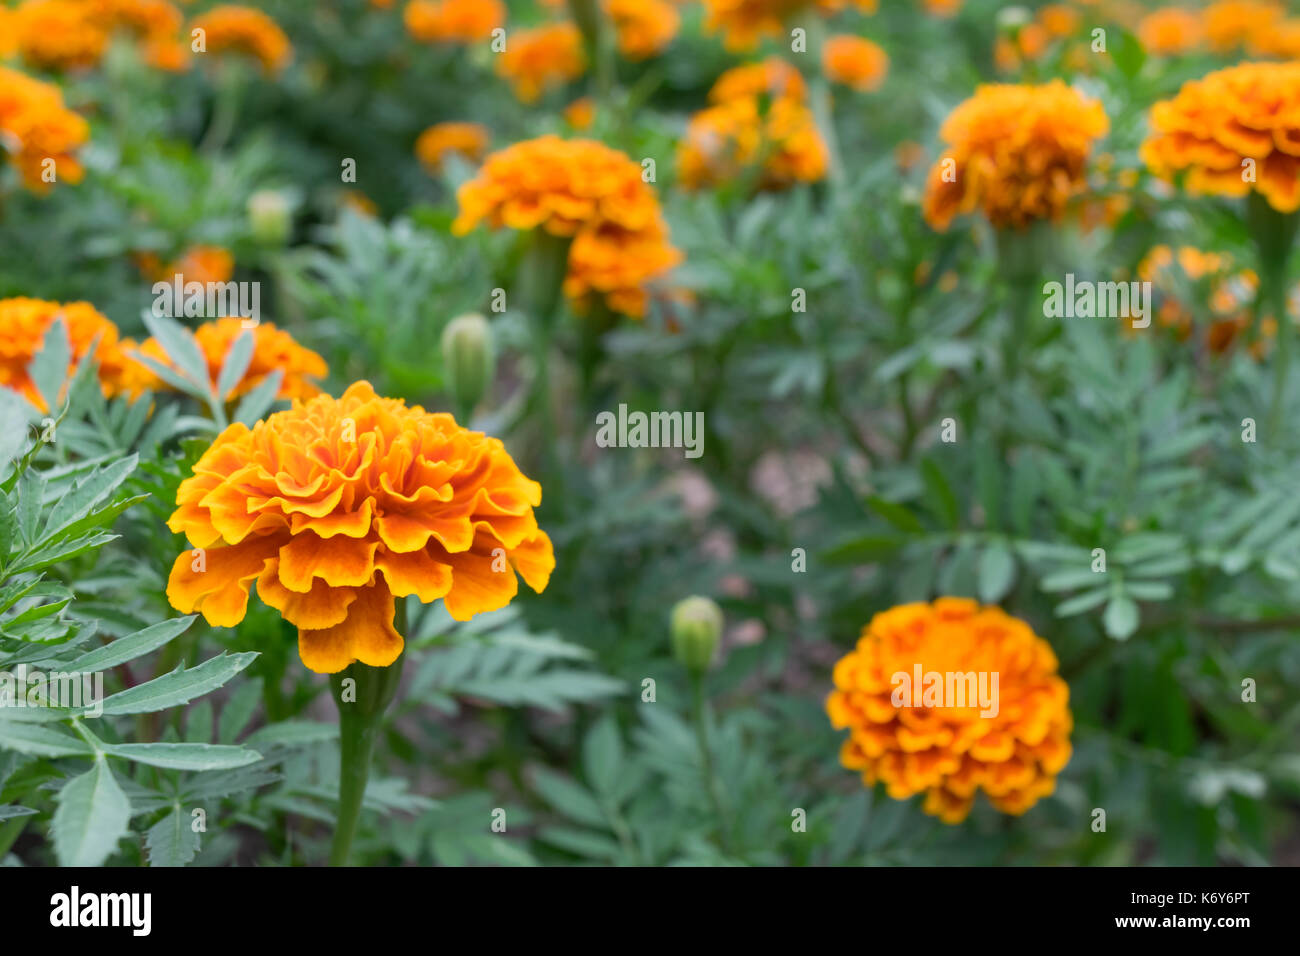 orange and yellow color of marigold flowers in the garden or park ...